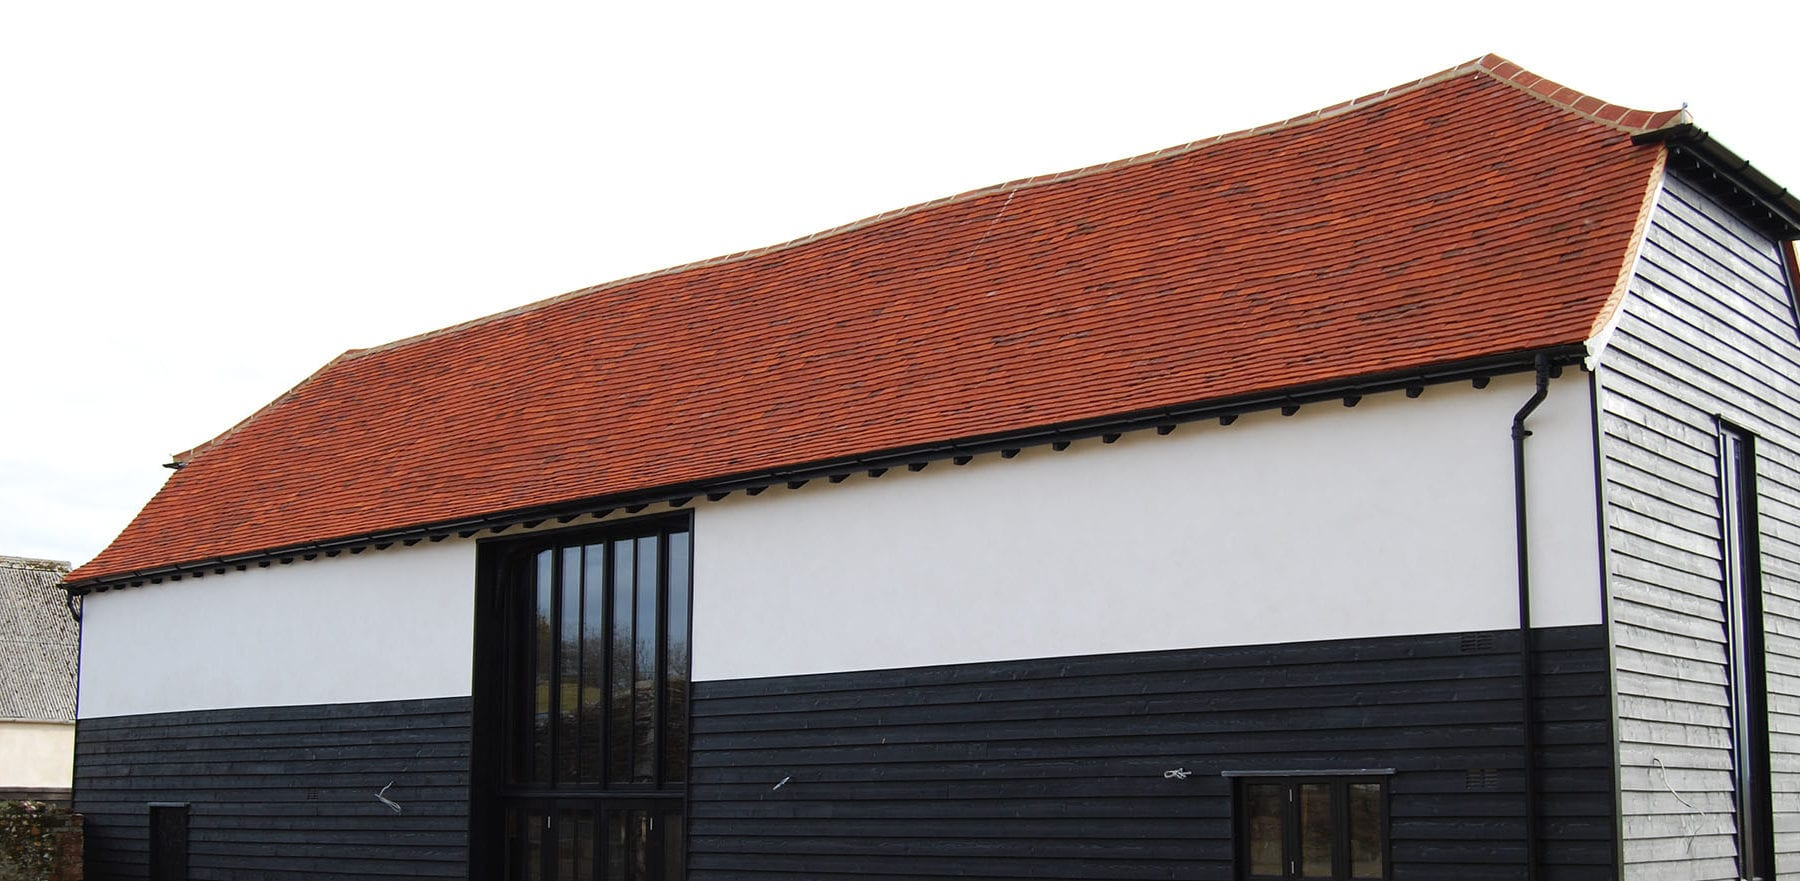 Lifestiles - Handmade Red Clay Roof Tiles - Saffron Walden, England 4